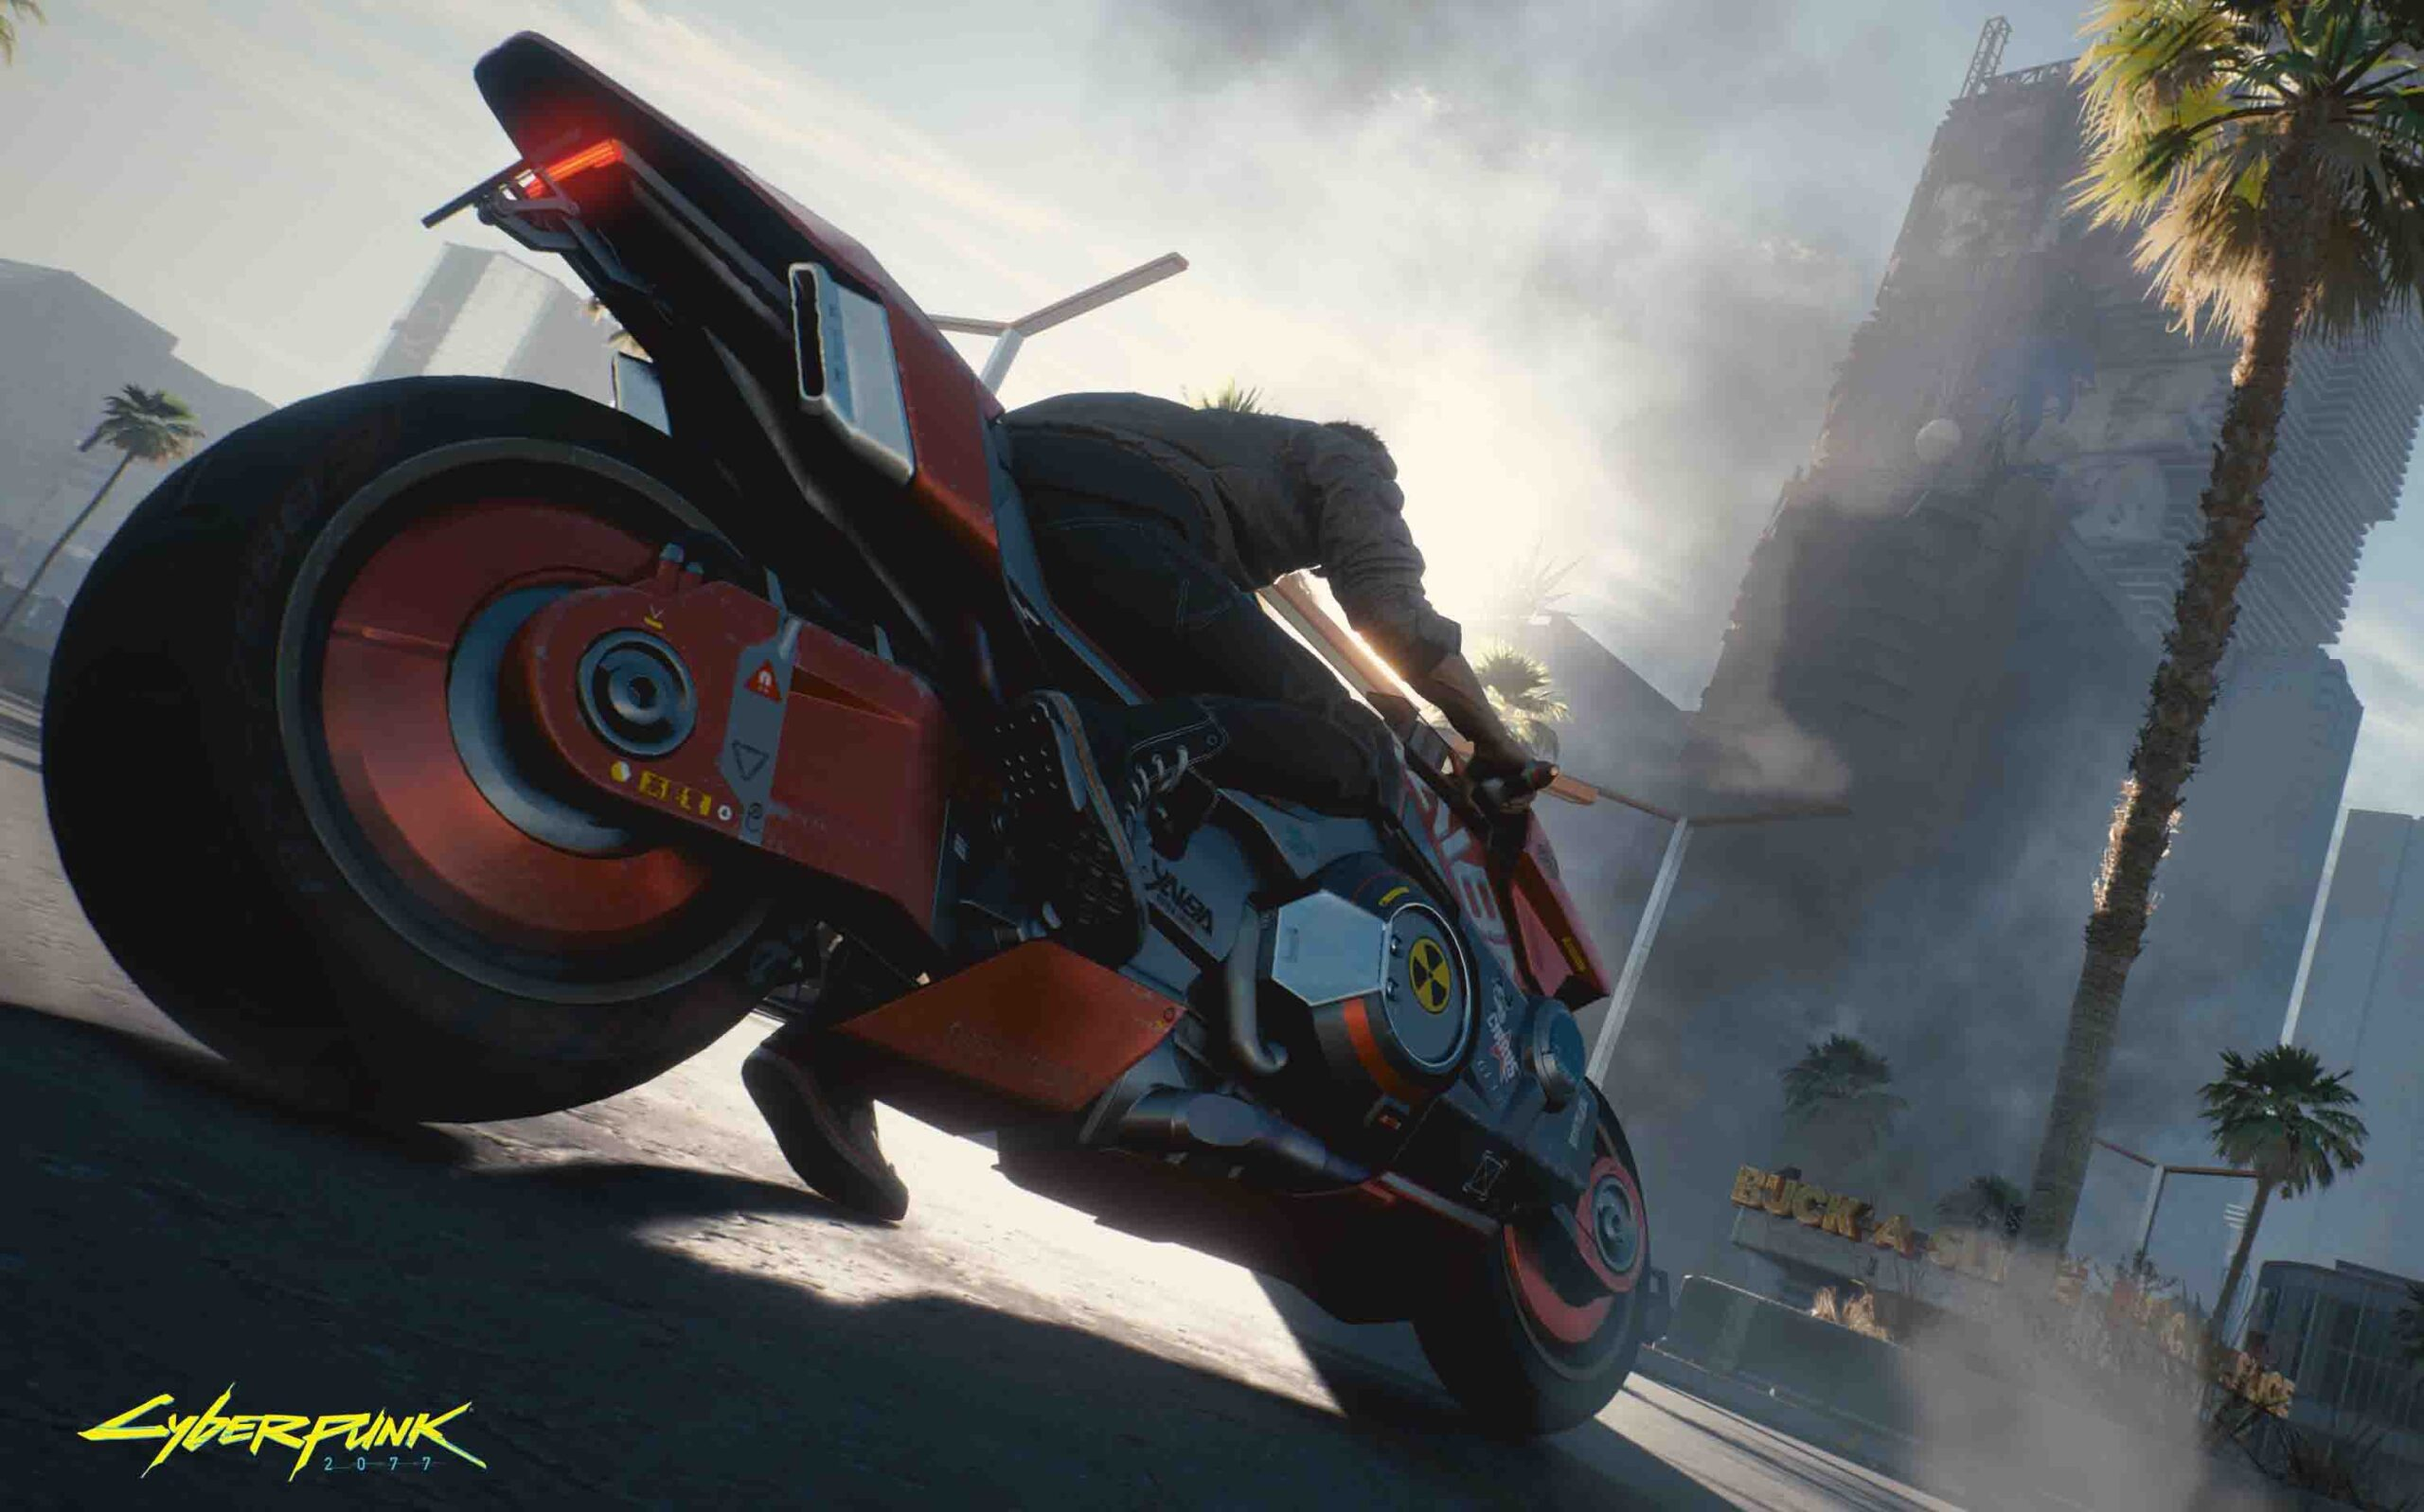 How to Enable Ray Tracing in Cyberpunk 2077